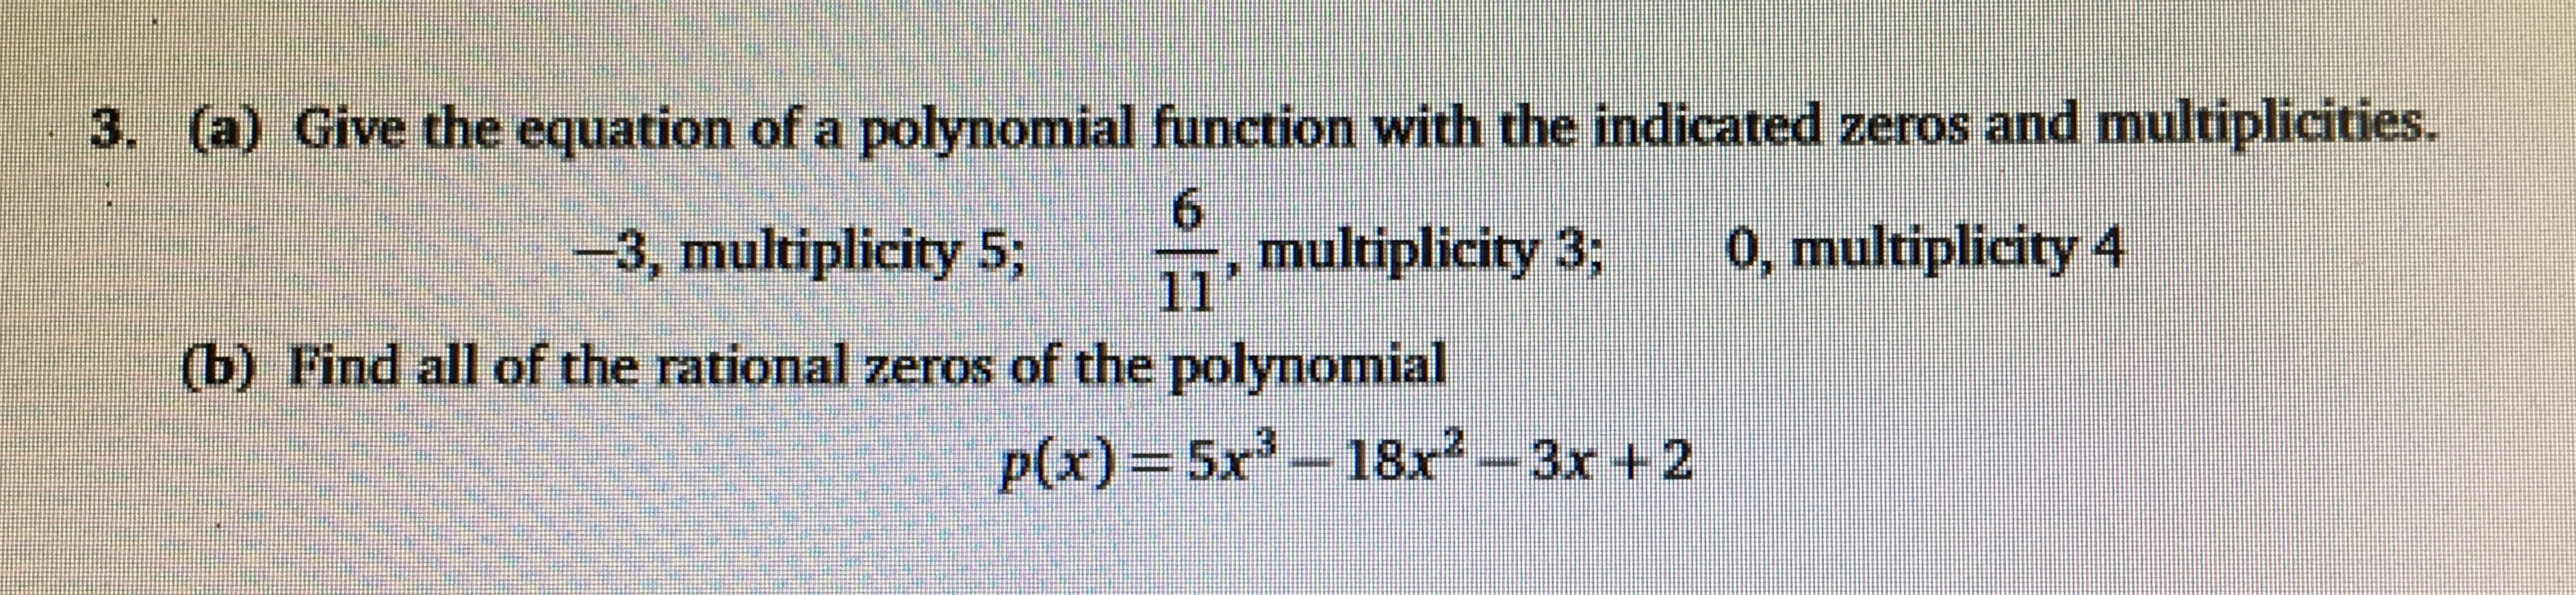 3. (a) Give the equation of a polynomial function with the indicated zeros and multiplicities. 6 multiplicity 3; 0, multiplicity 4 3, multiplicity 5; 111 (b) Find all of the rational zeros of the polynomial p(x)=5x-18x2--3x +2